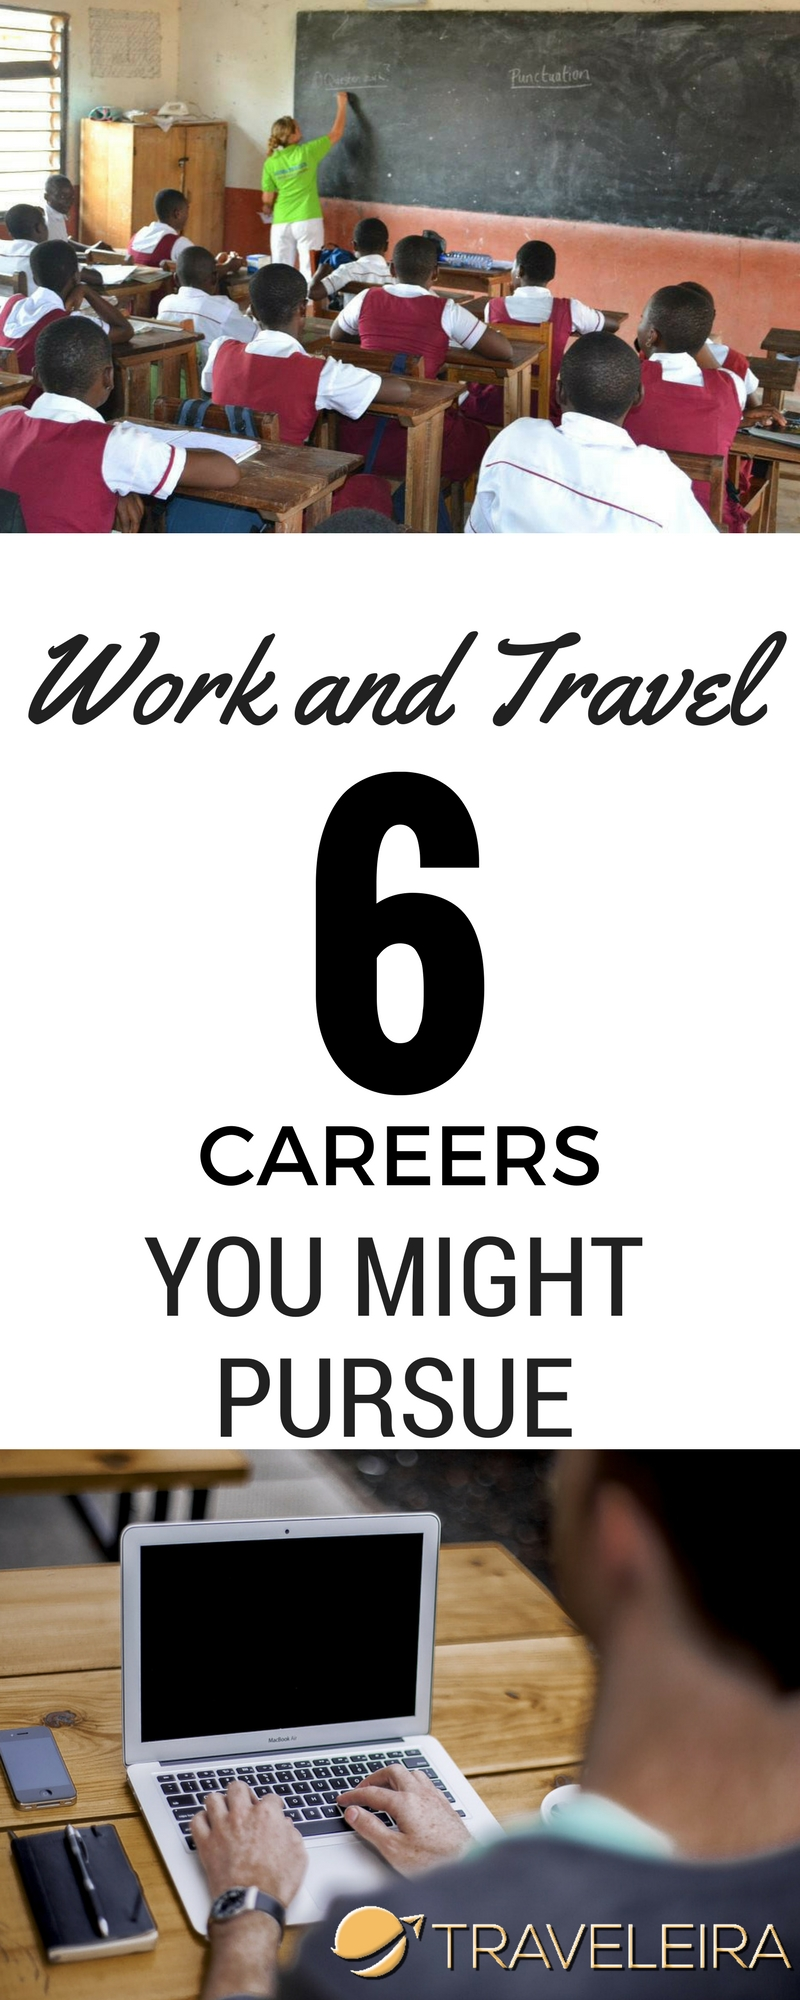 Work and Travel: 6 Careers You Might Pursue | Traveleira